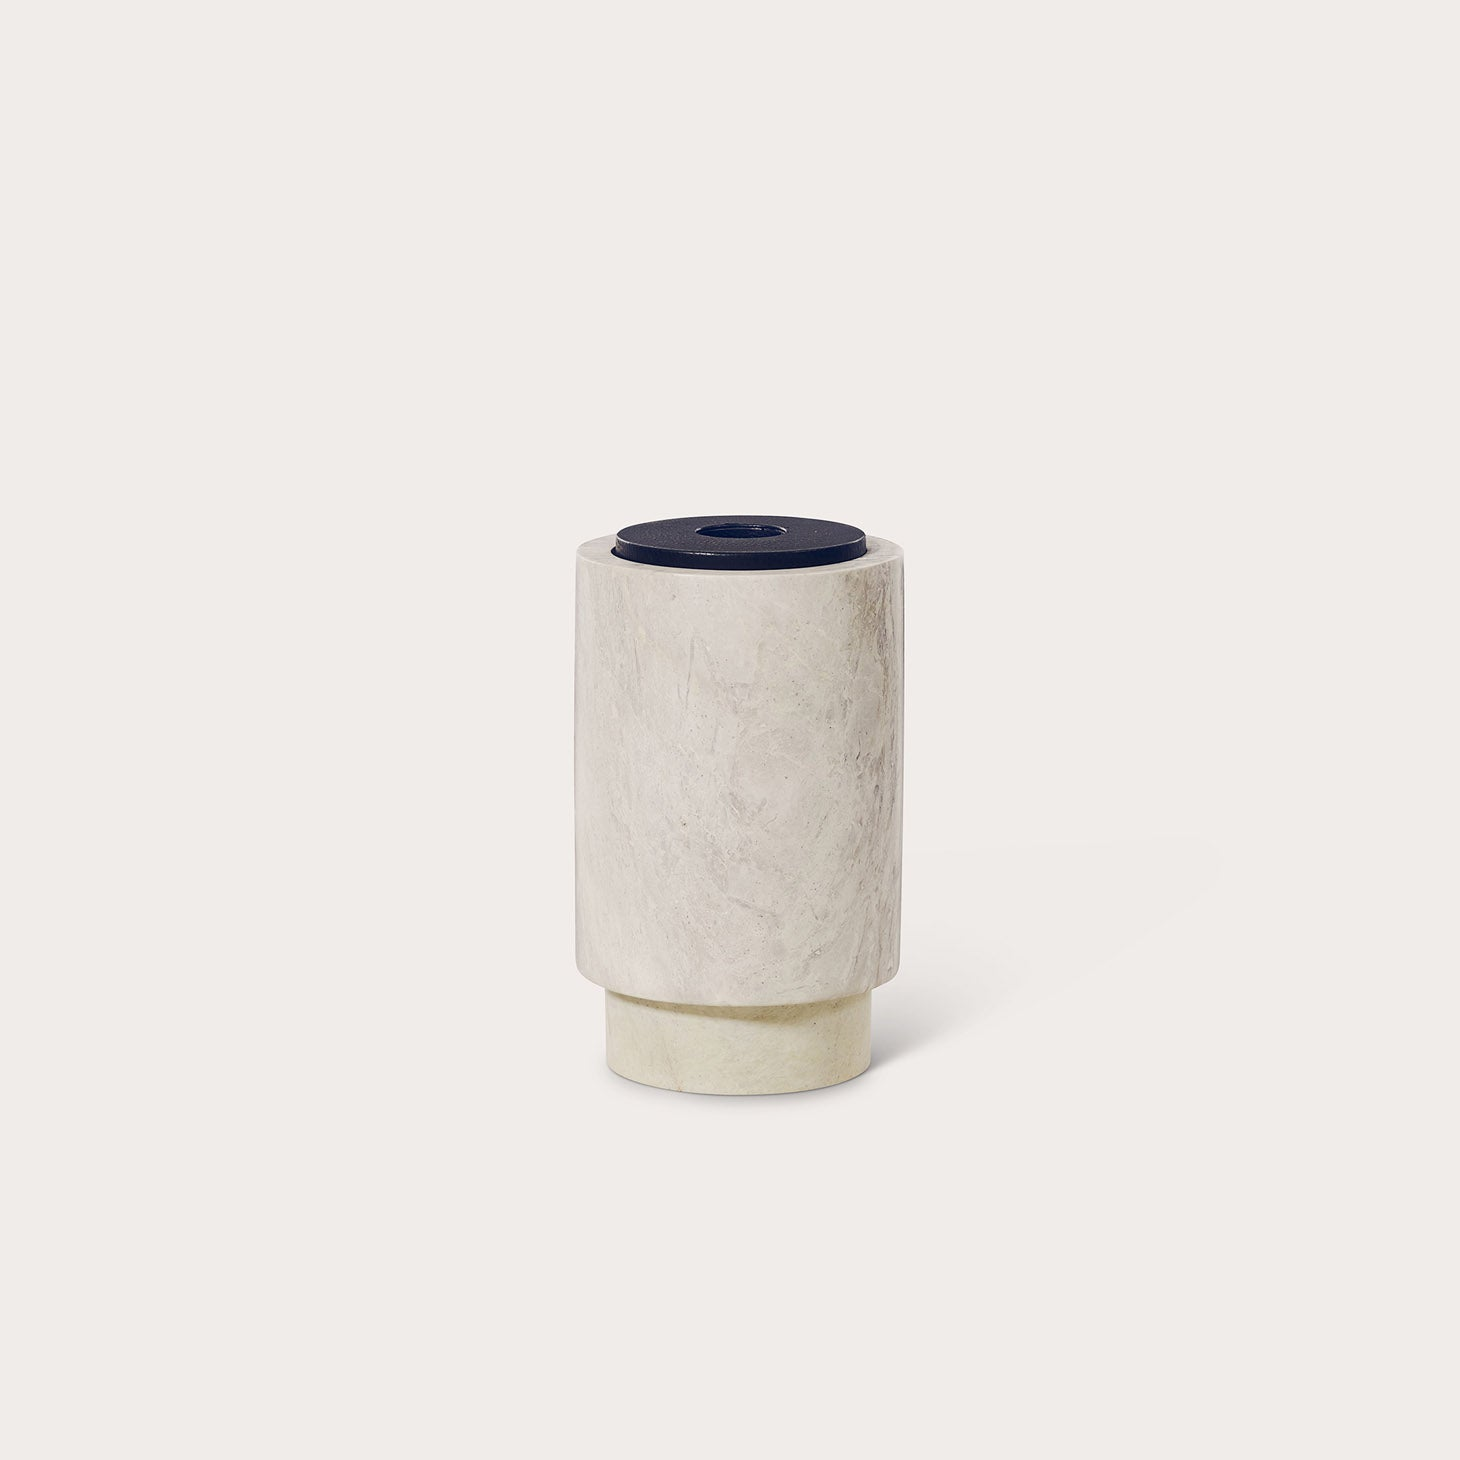 Marble Vase Accessories Michael Verheyden Designer Furniture Sku: 554-100-10206